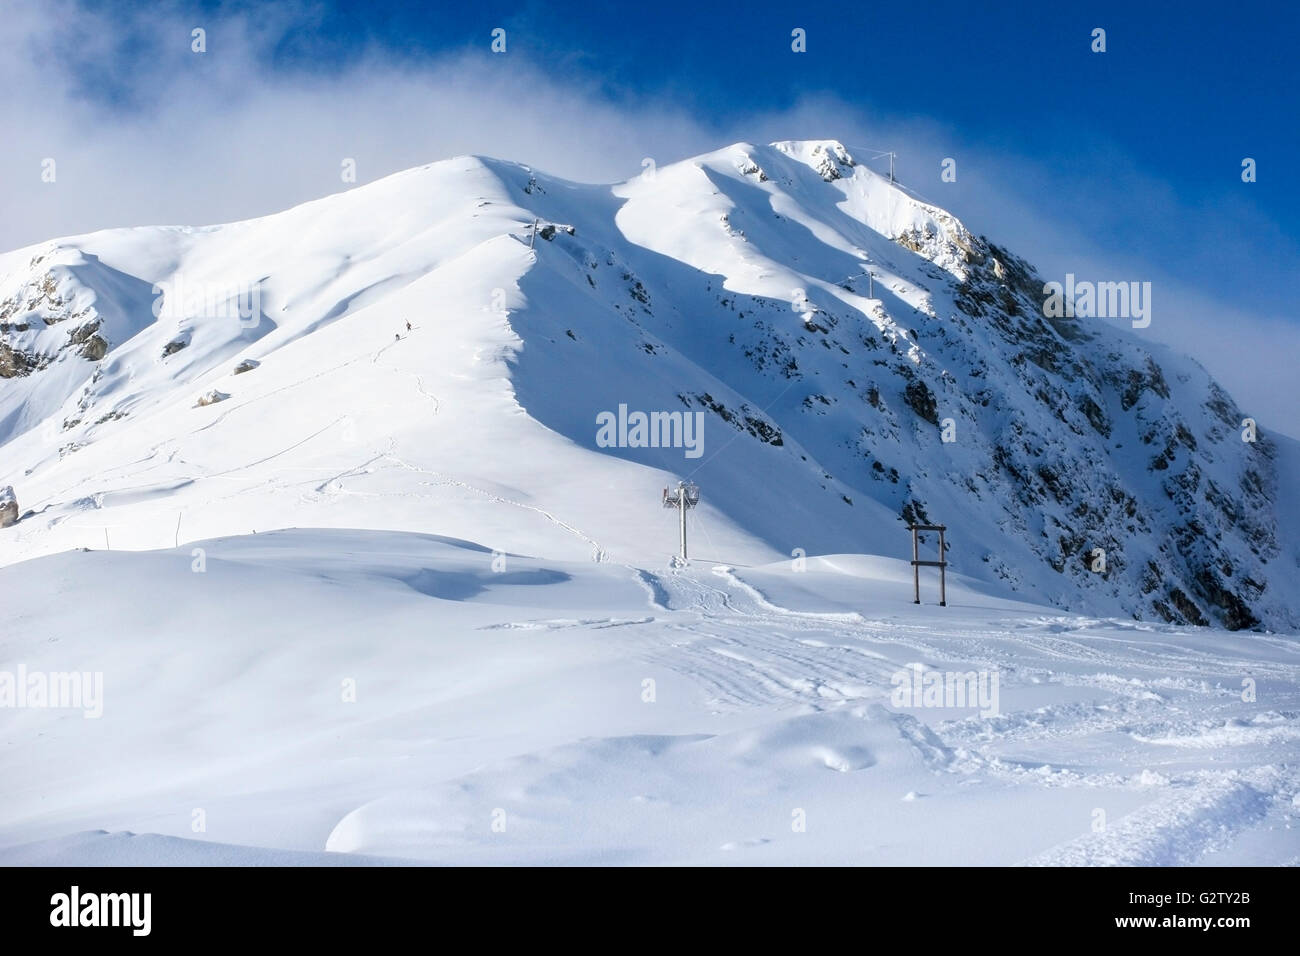 Les Arcs 2000 ski area in France, with two skiers making their way to the top on foot for an amazing off-piste run - Stock Image